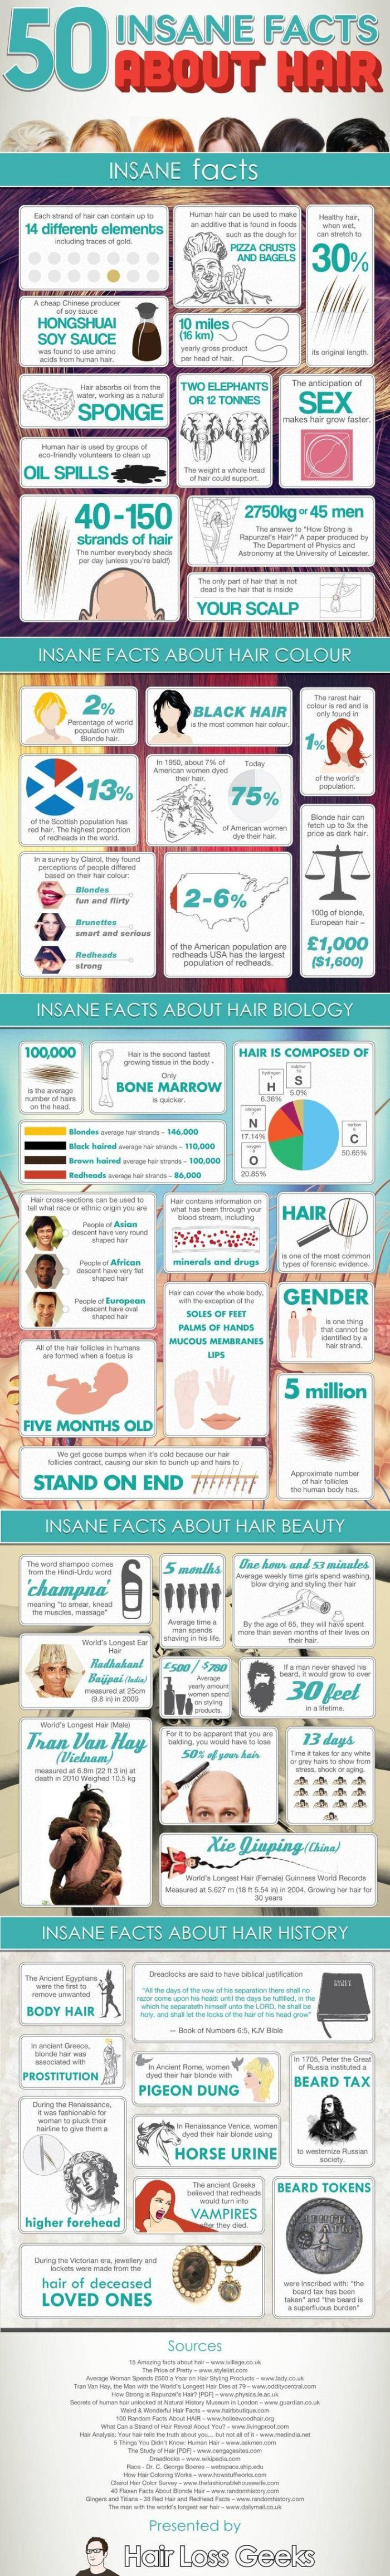 hair facts infographic